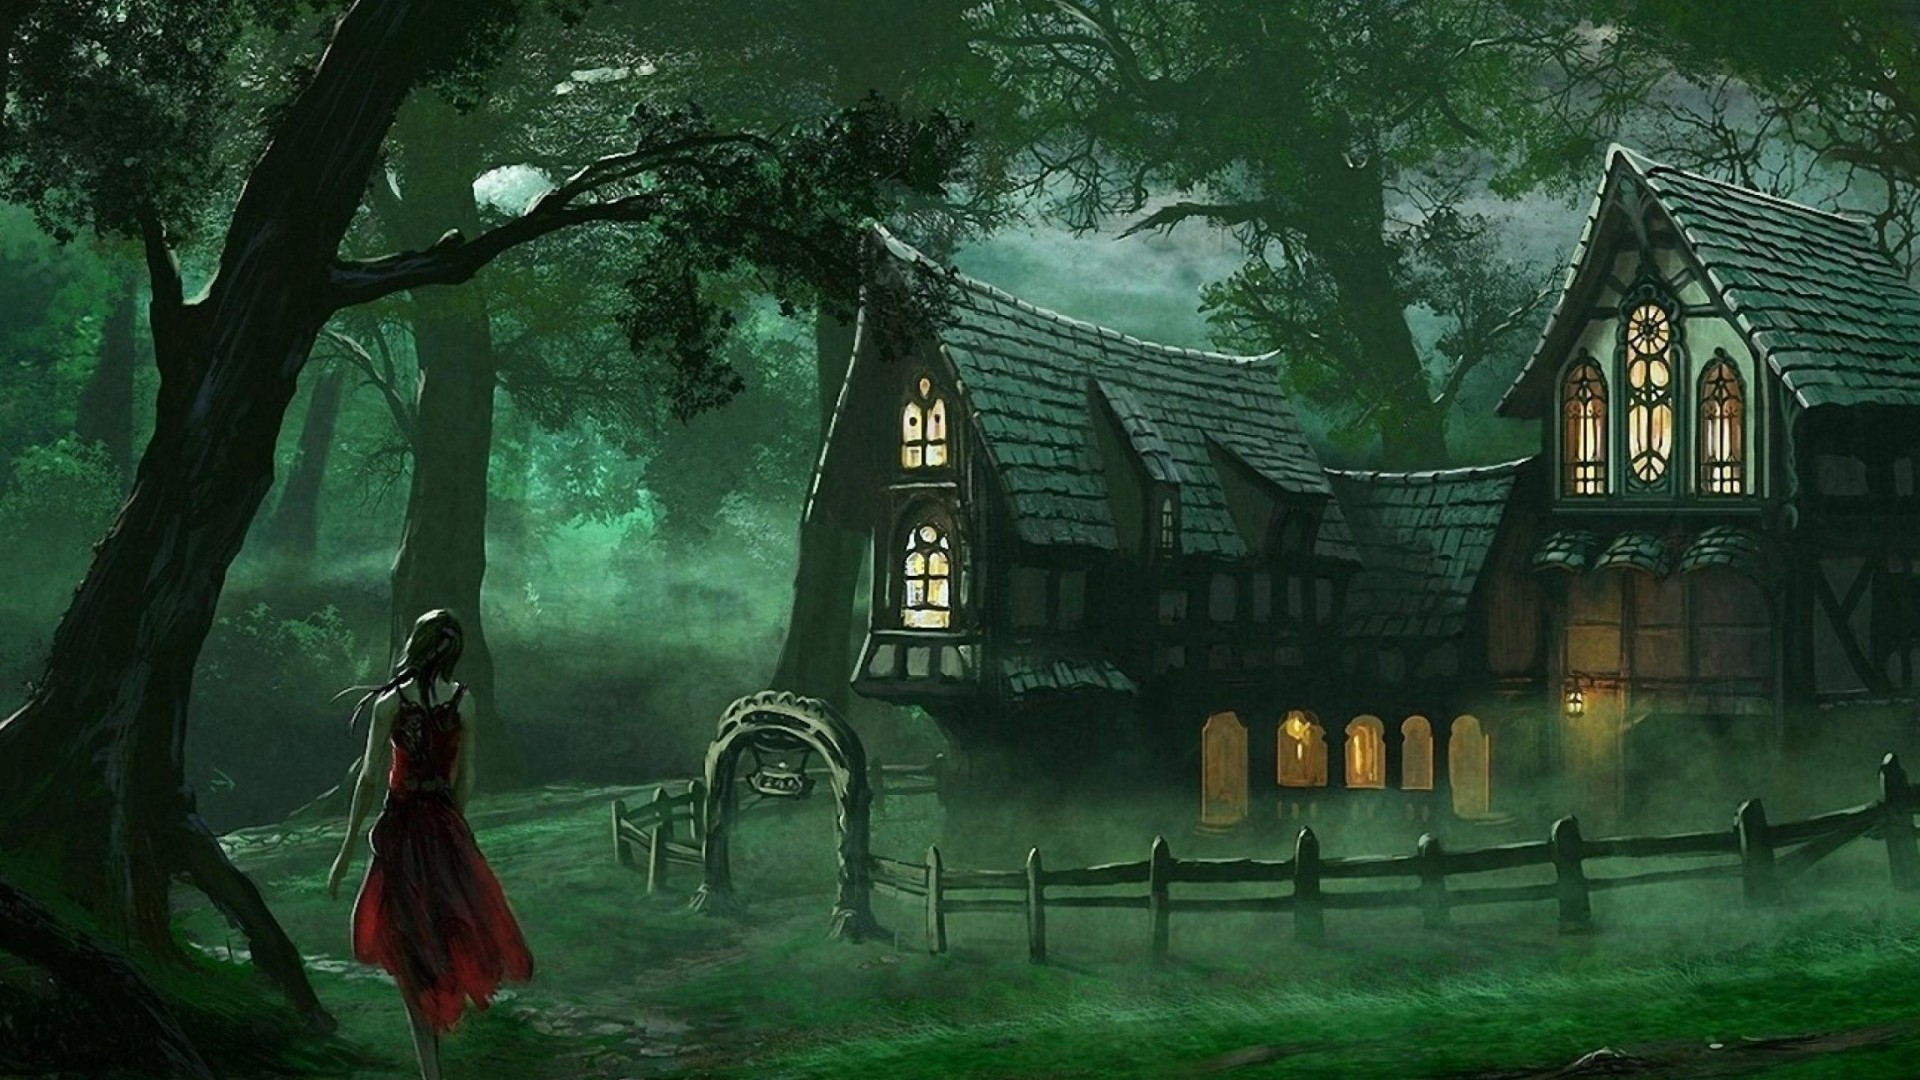 1920x1080 Spooky House Fantasy Forest Wallpaper